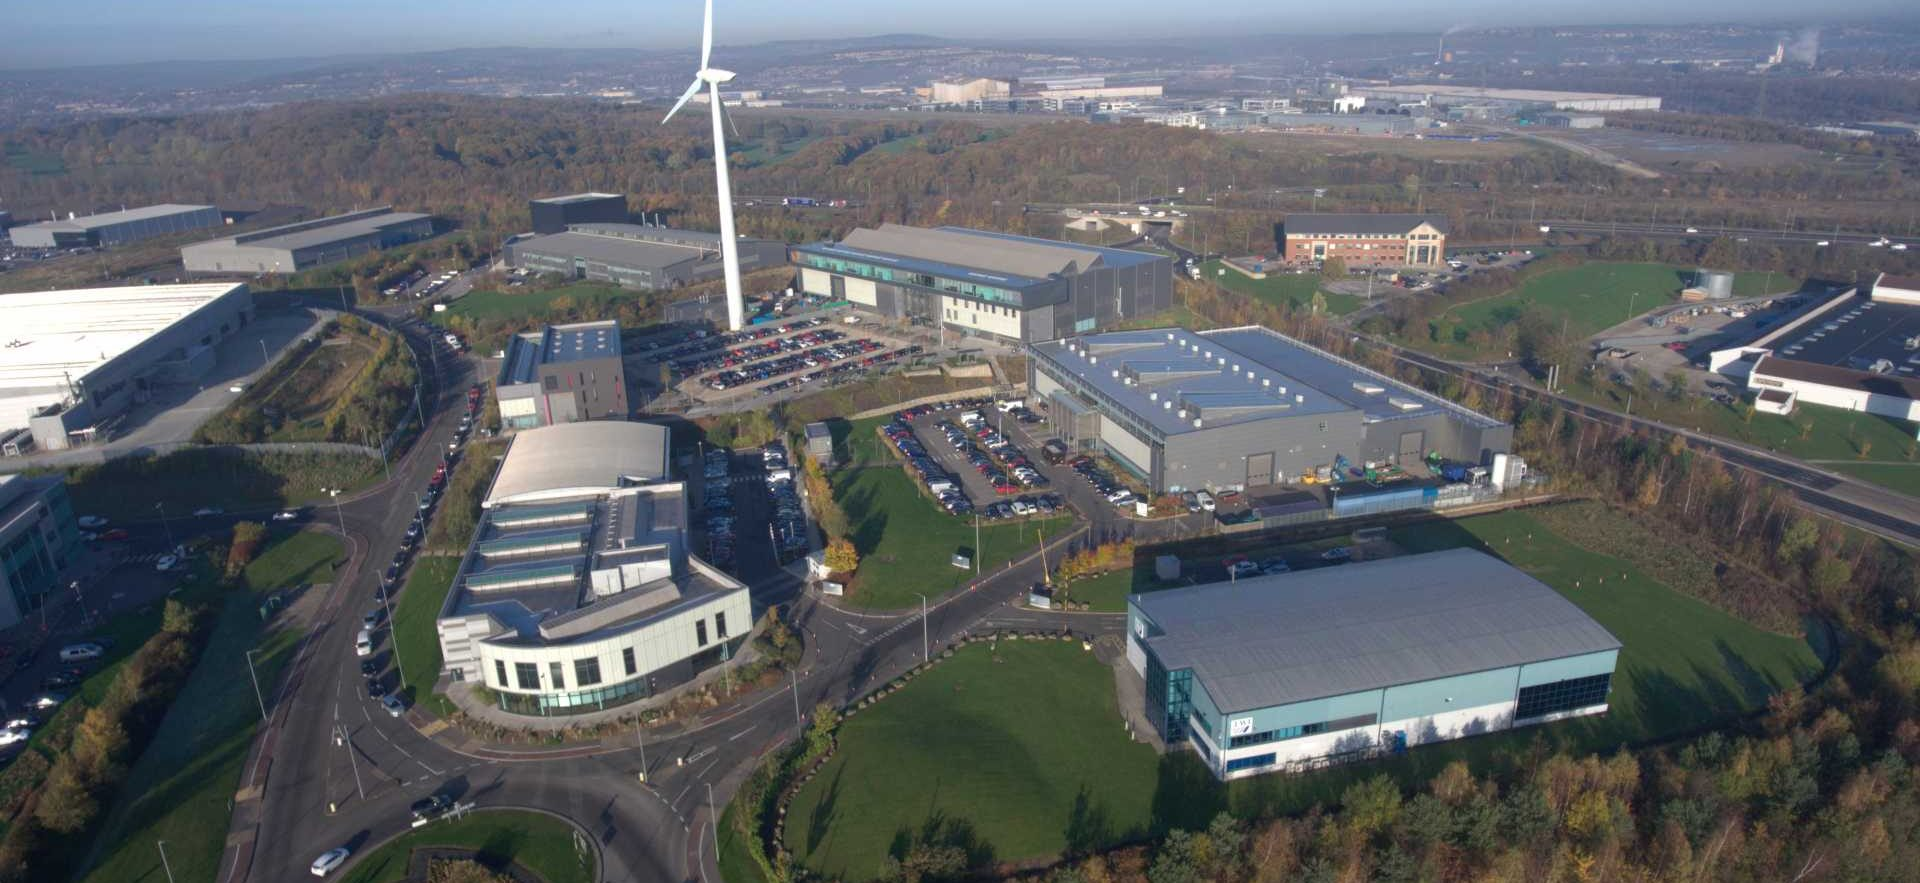 The Advanced Manufacturing Park is one of the most concentrated manufacturing bases in the UK. Image: HVMC